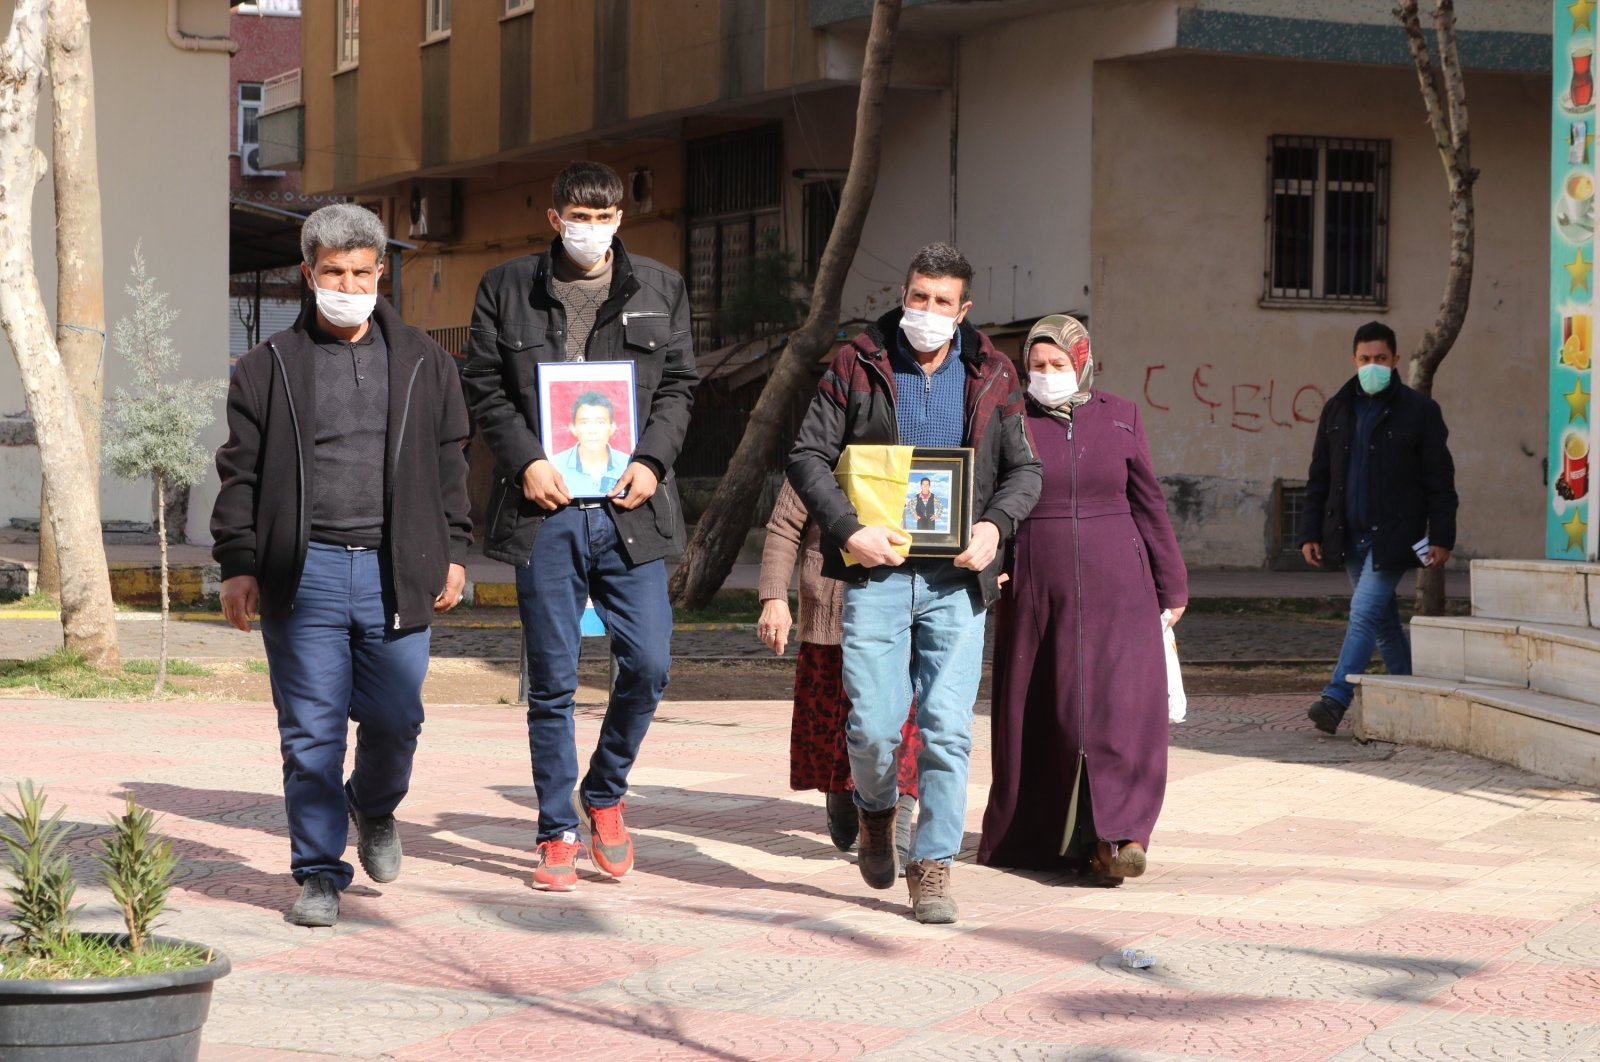 Two more families join the sit-in protest against the PKK in Diyarbakır province, southeastern Turkey, Feb. 8, 2021. (IHA Photo)